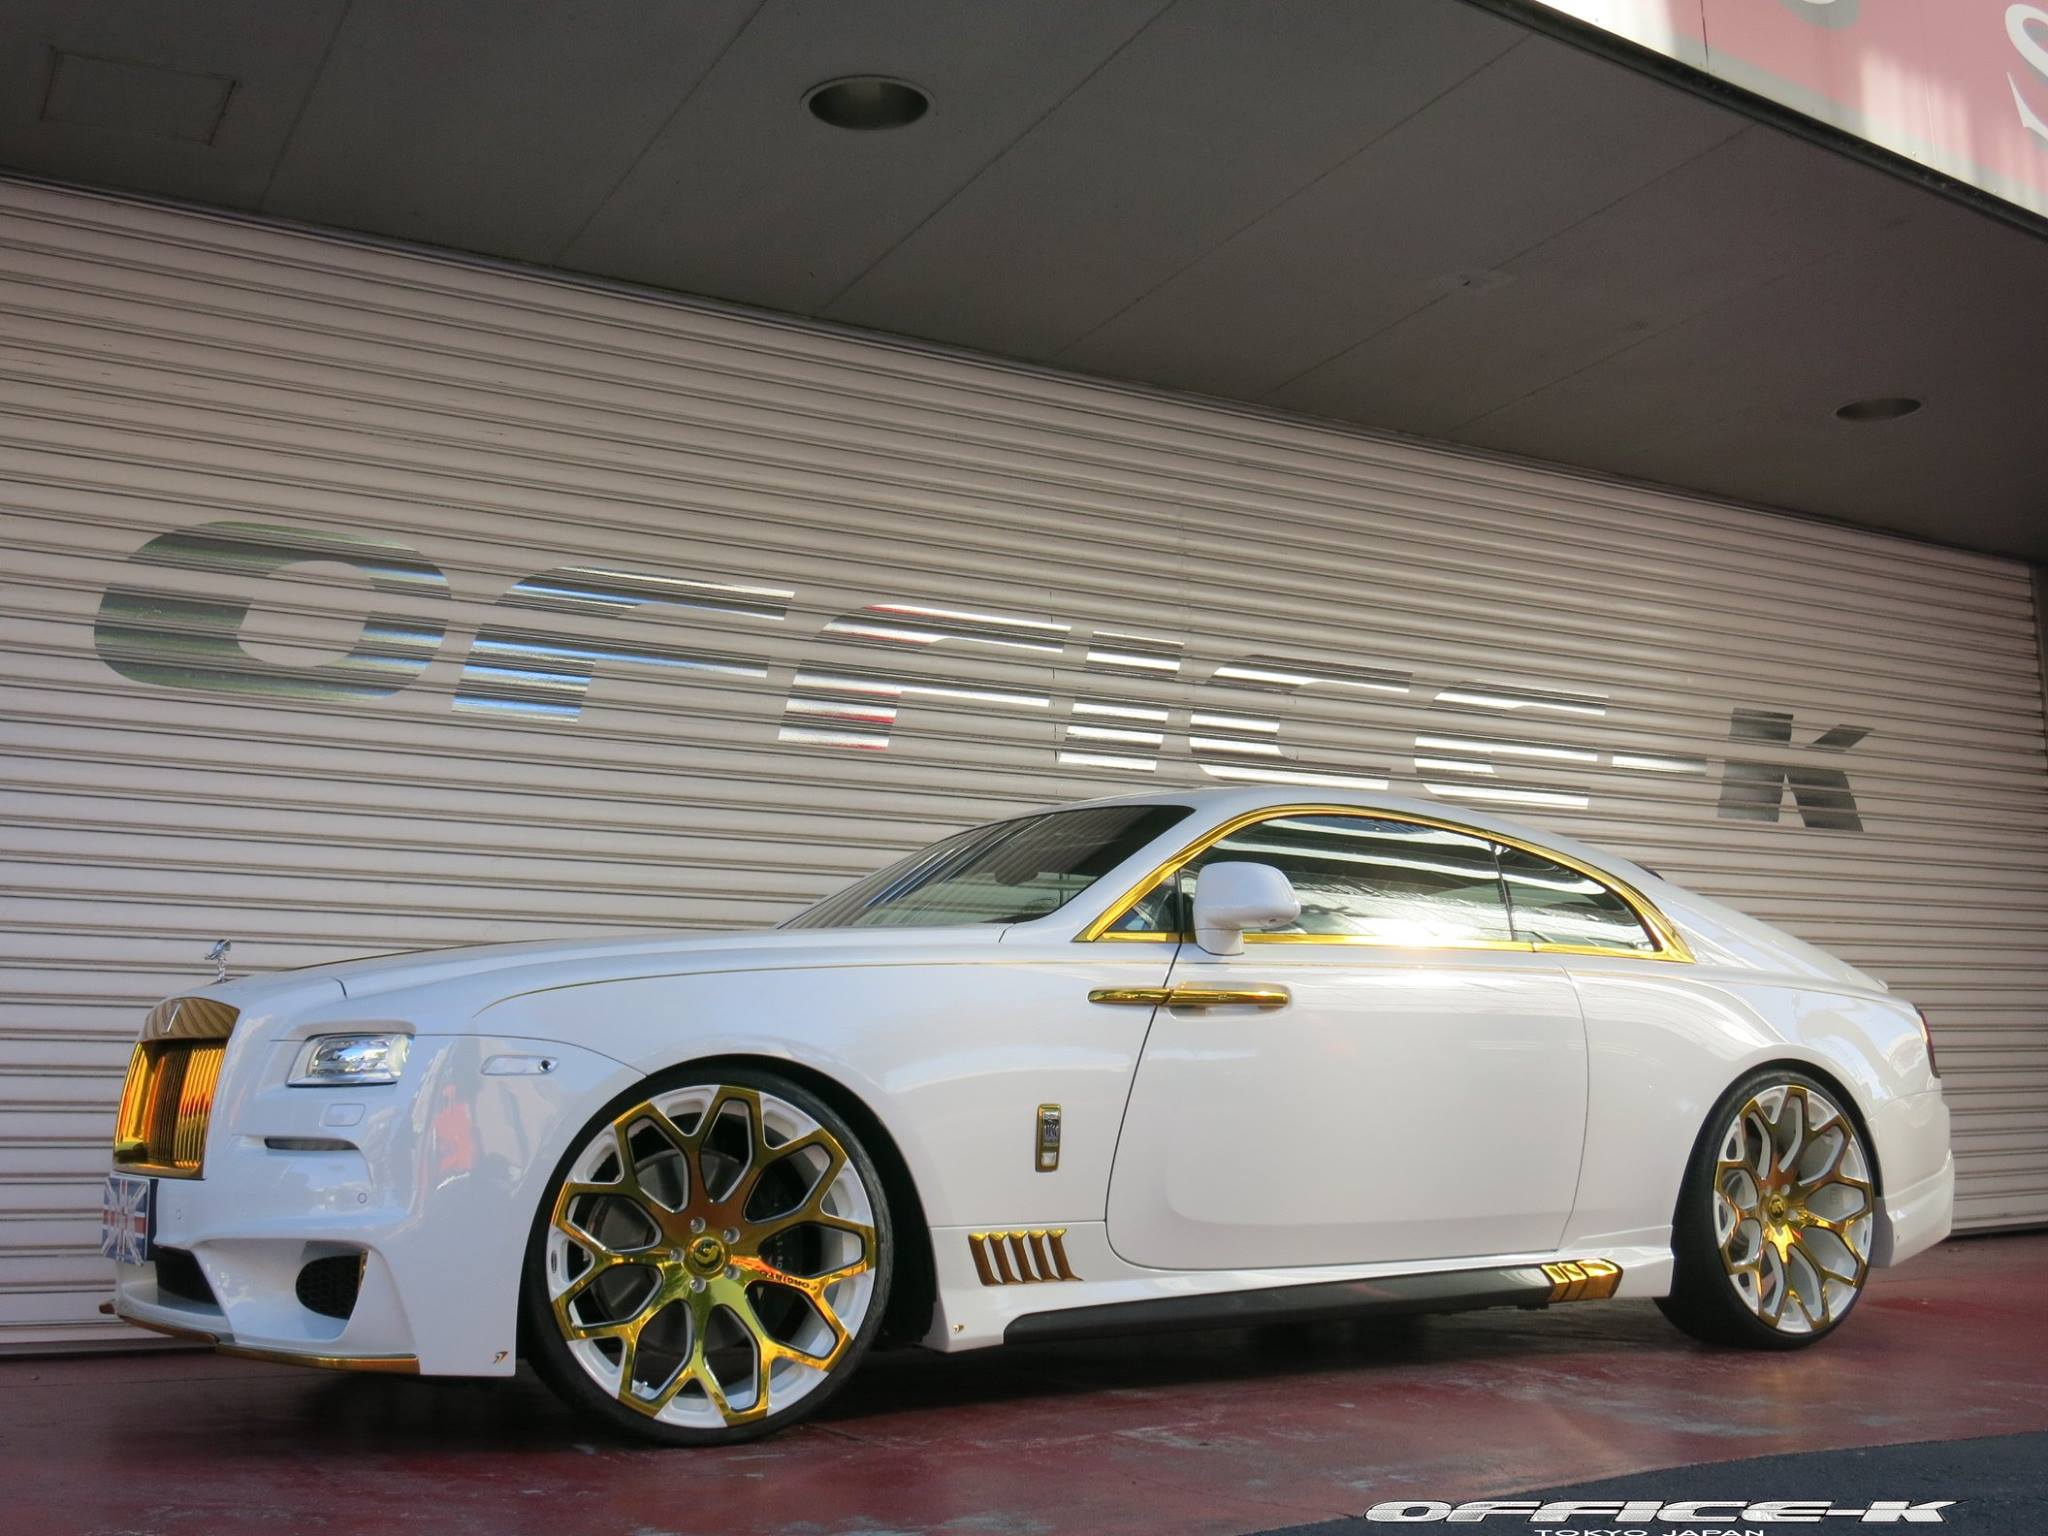 White Rolls Royce Wraith With Gold Accents From Office K